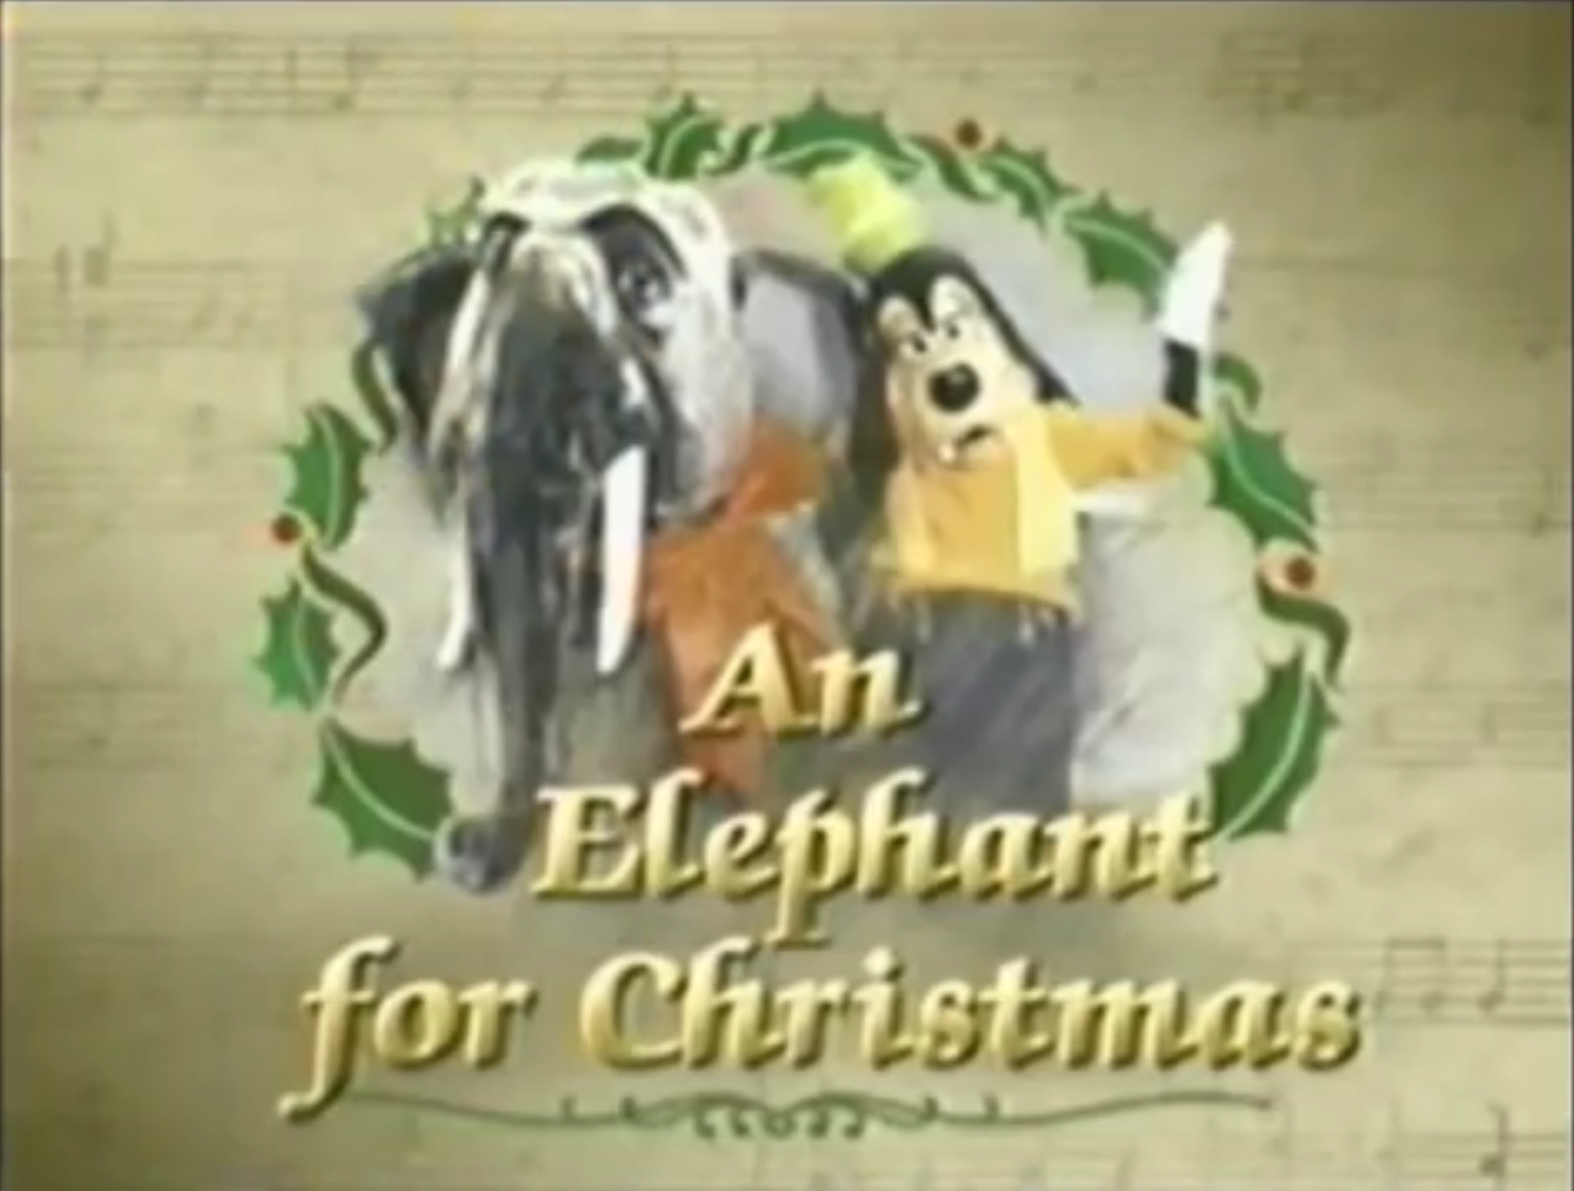 ... by Goofy in Disney Sing Along Songs: The Twelve Days of Christmas